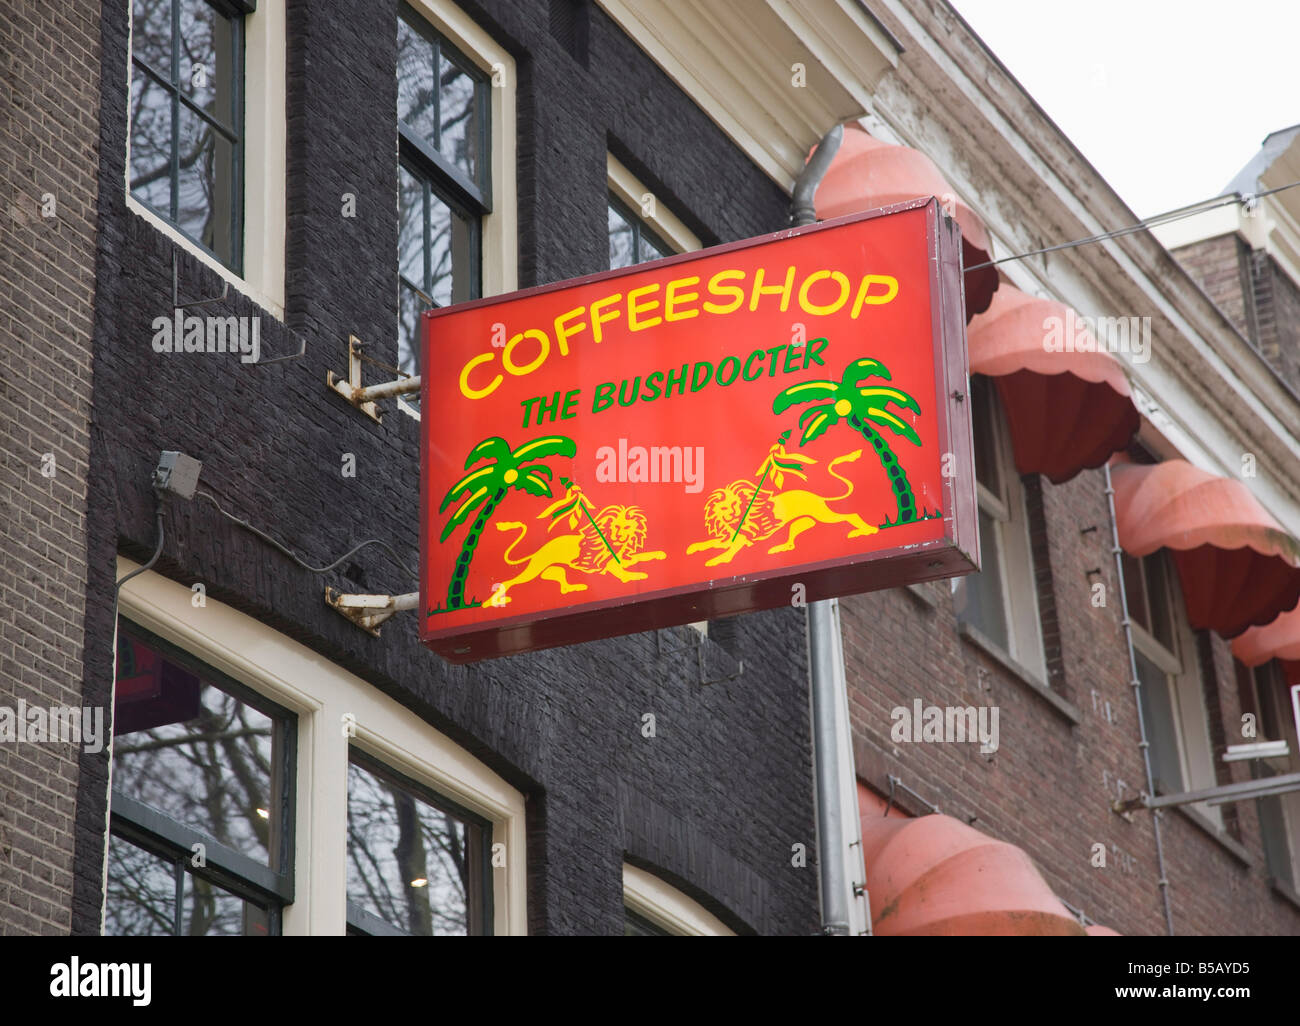 One of the many coffee shops where cannabis can legally be bought and consumed, Amsterdam, Netherlands, Europe - Stock Image